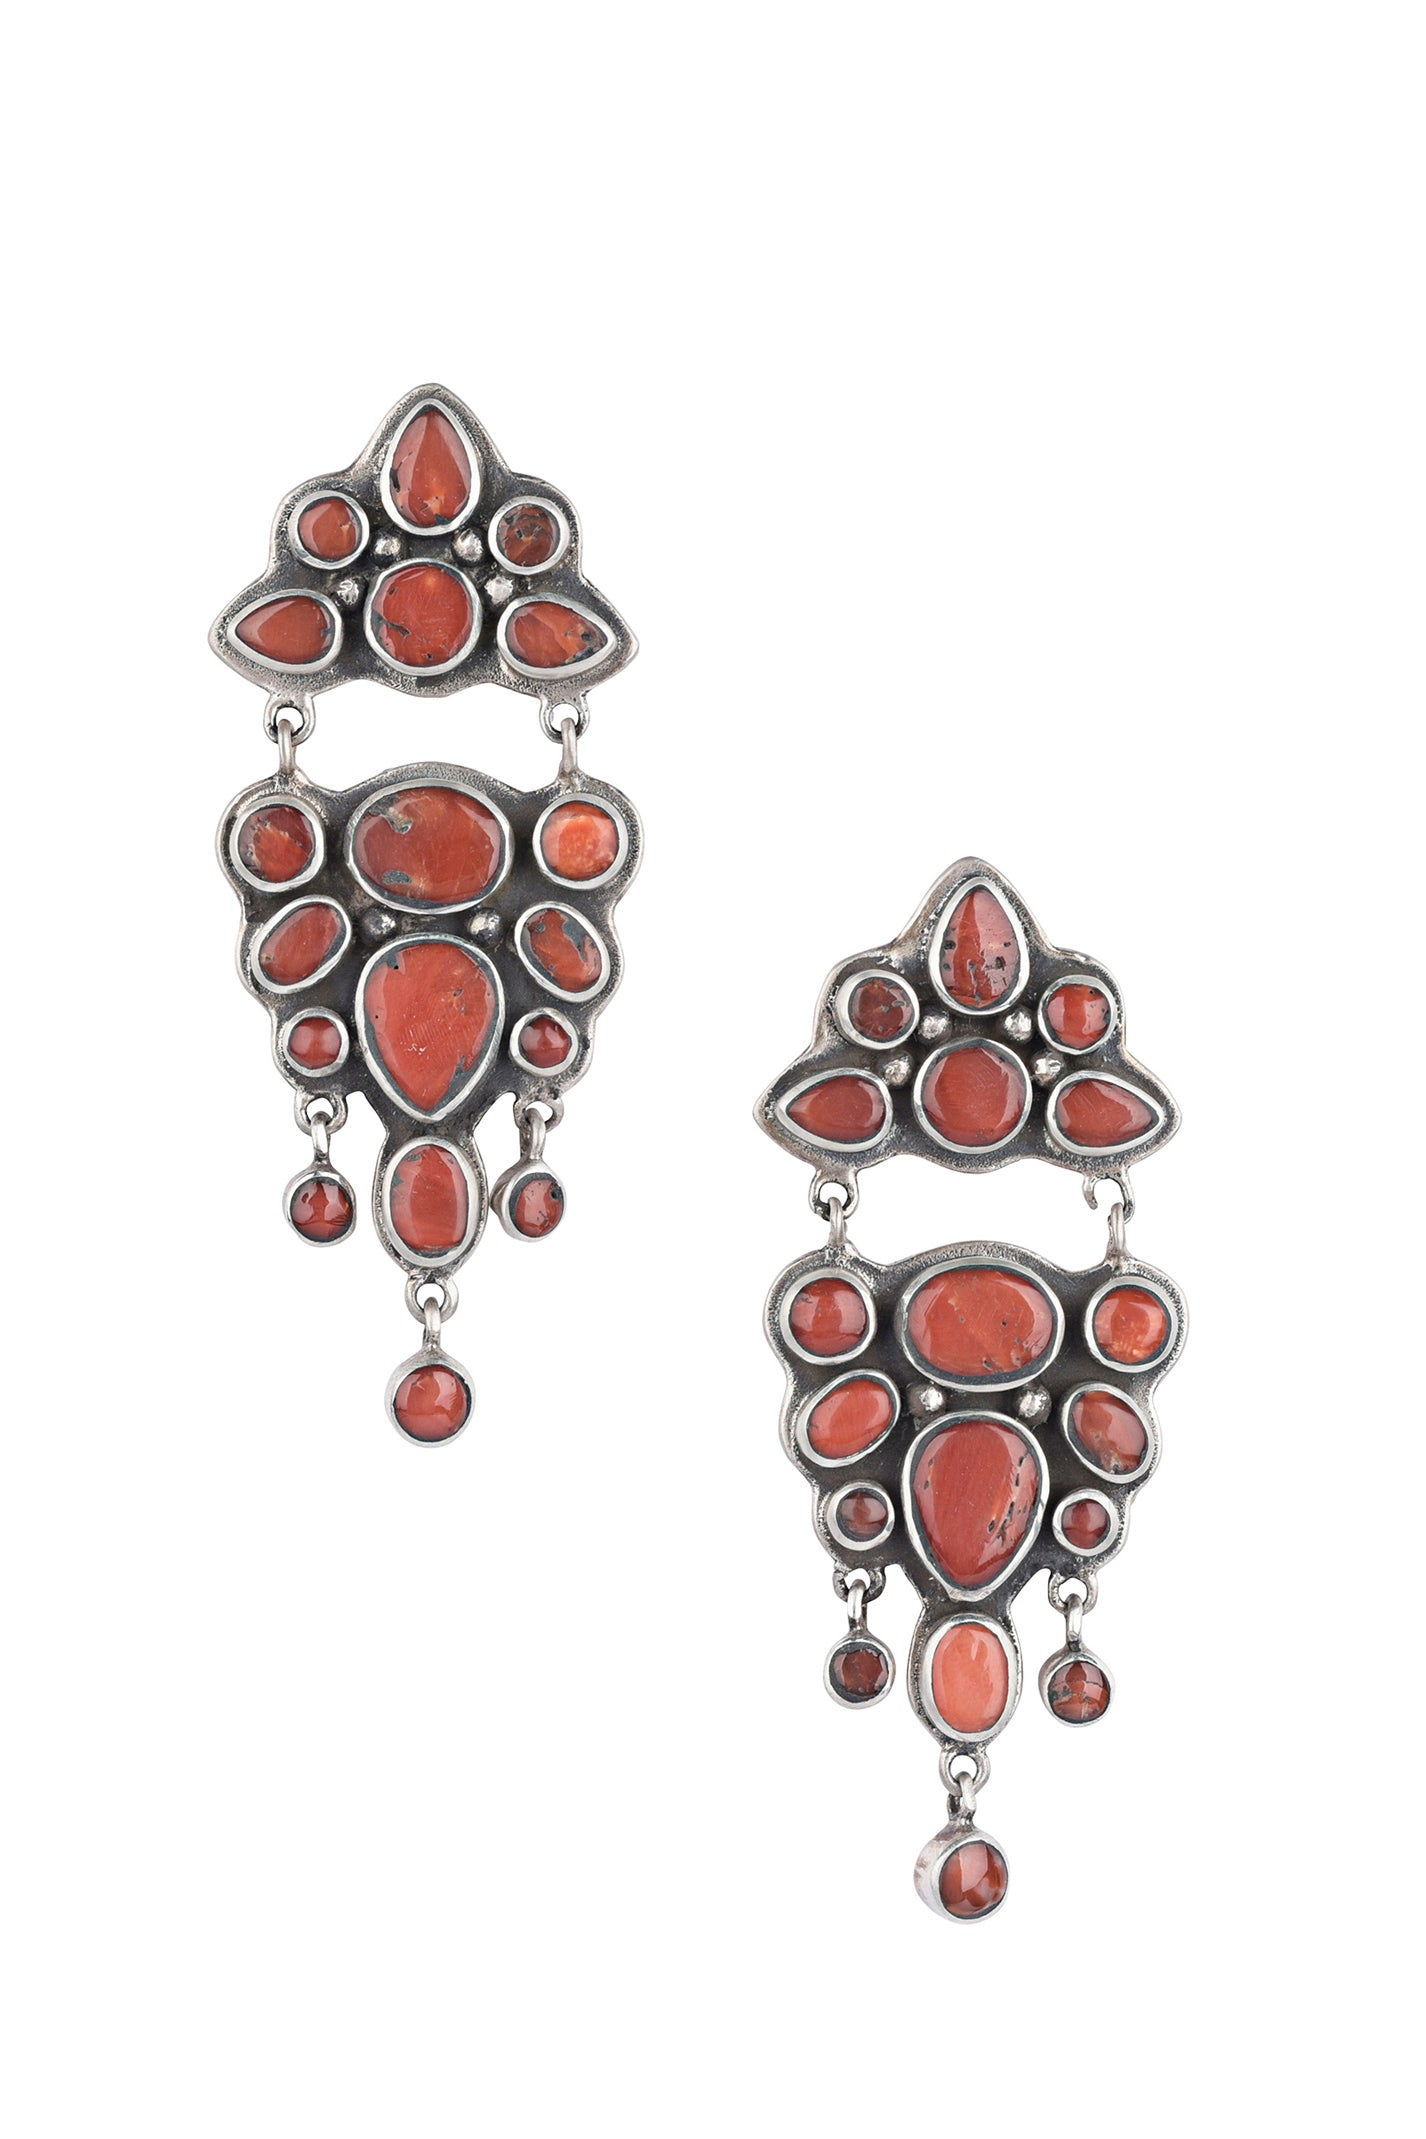 Earrings, Chandelier, Coral, Rambling Rose, 571